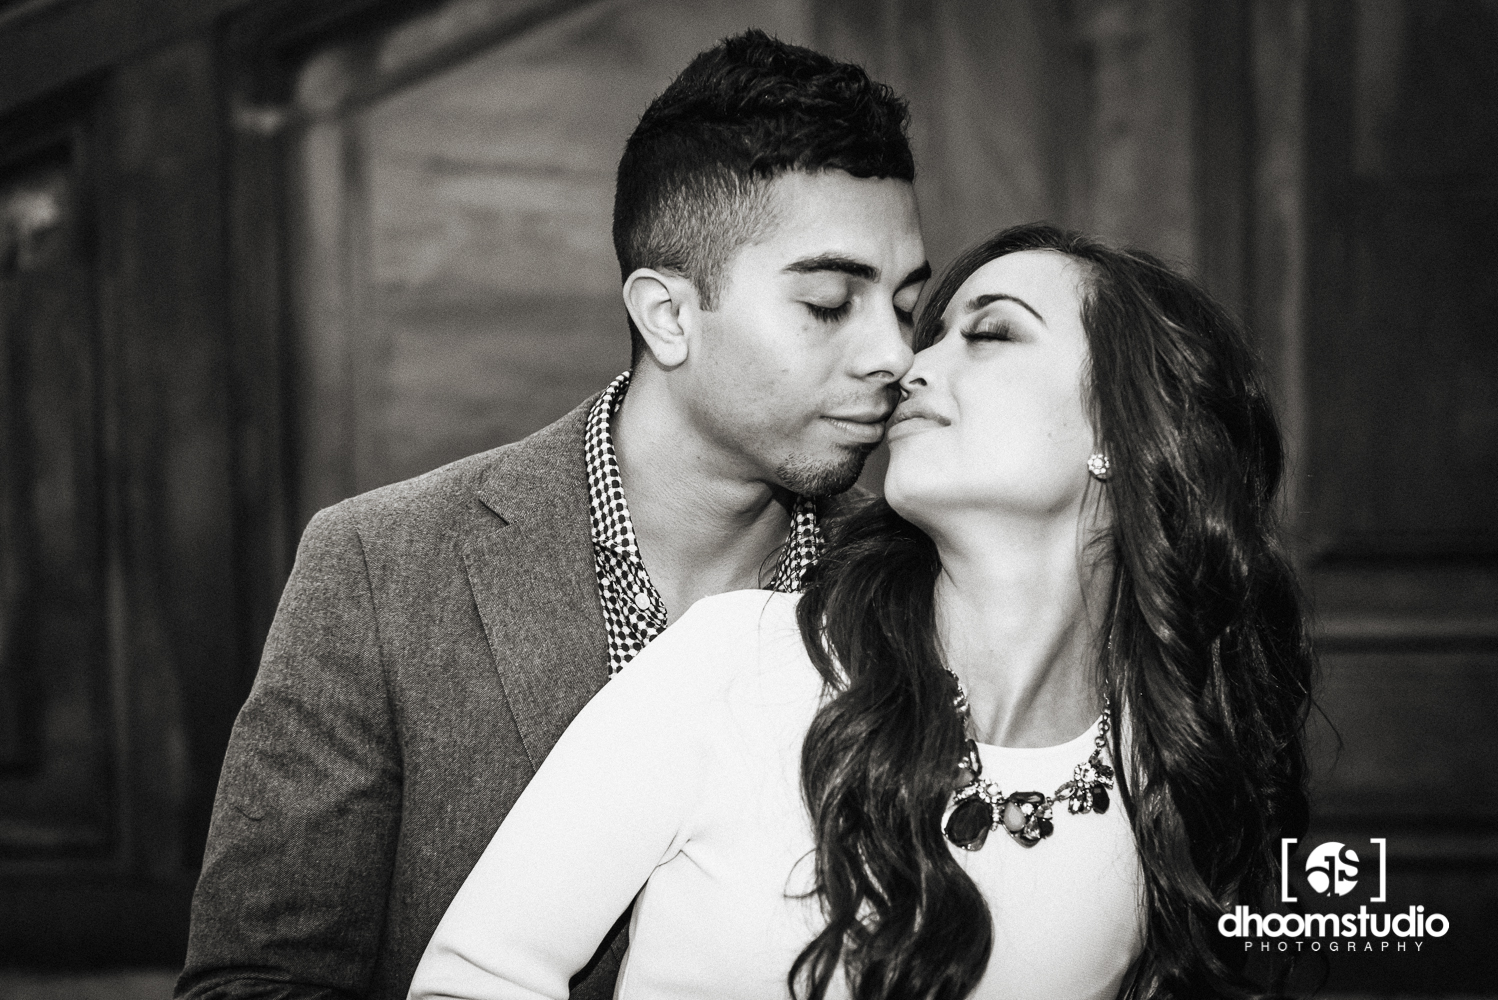 Kia + Ken Engagement Session | Central Park, New York | 10.17.13